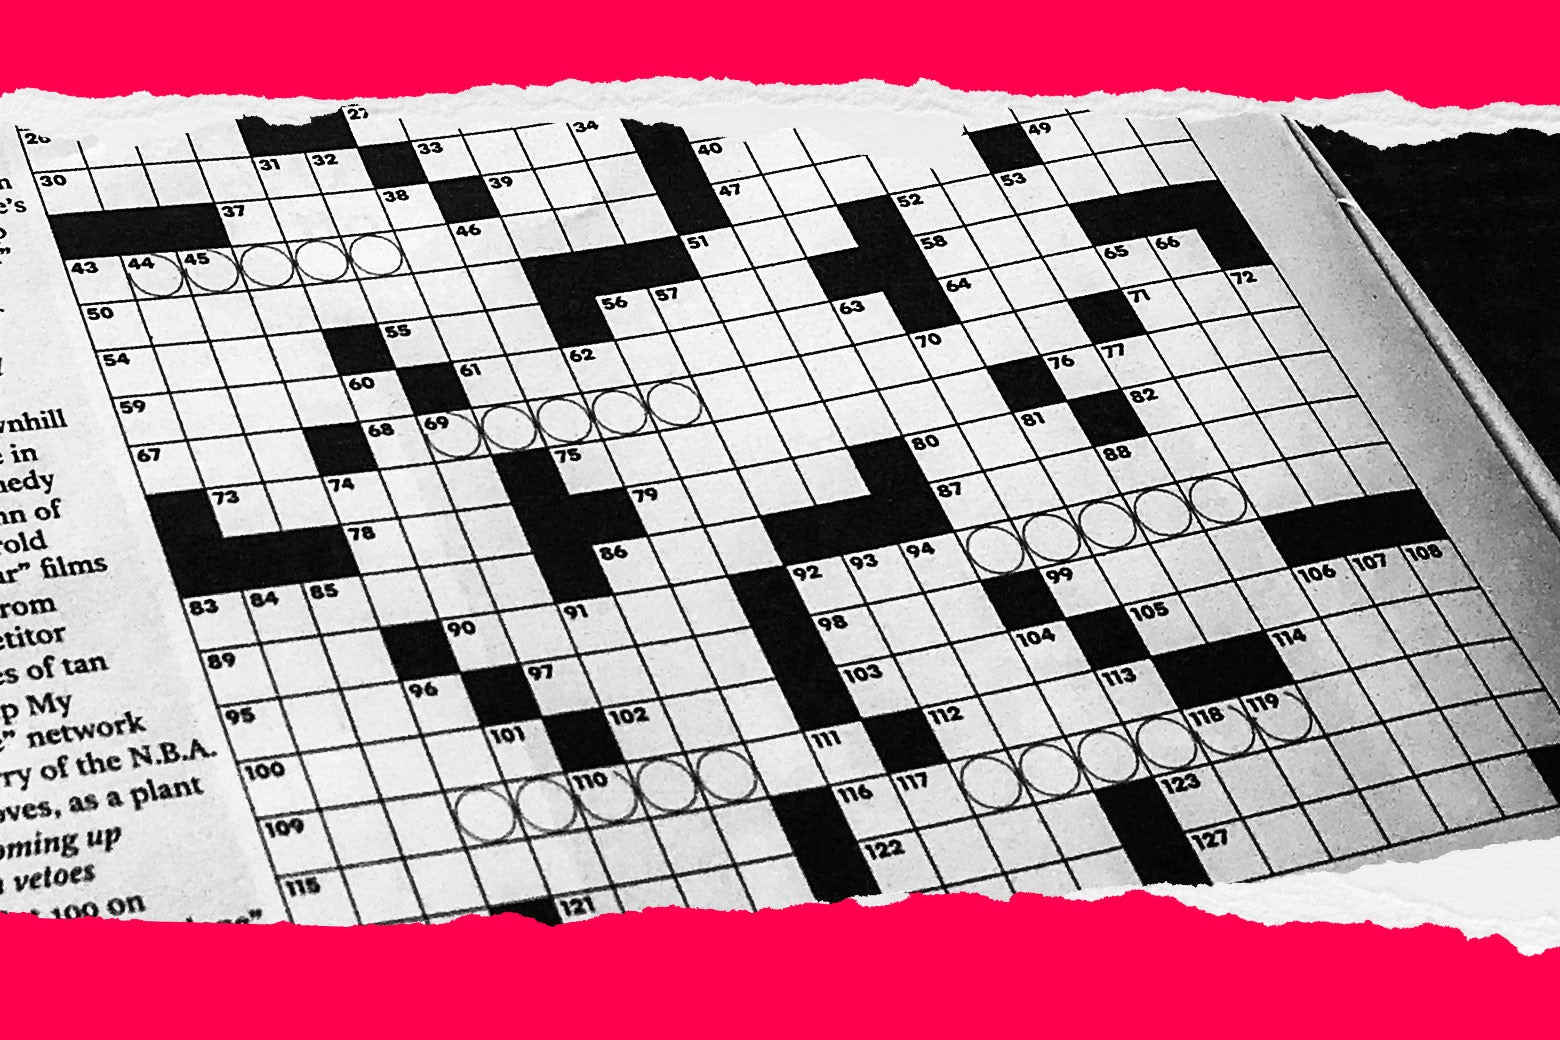 photo relating to La Times Printable Crossword Puzzle identify The NYT crossword puzzles employ the service of of an ethnic slur states a great deal